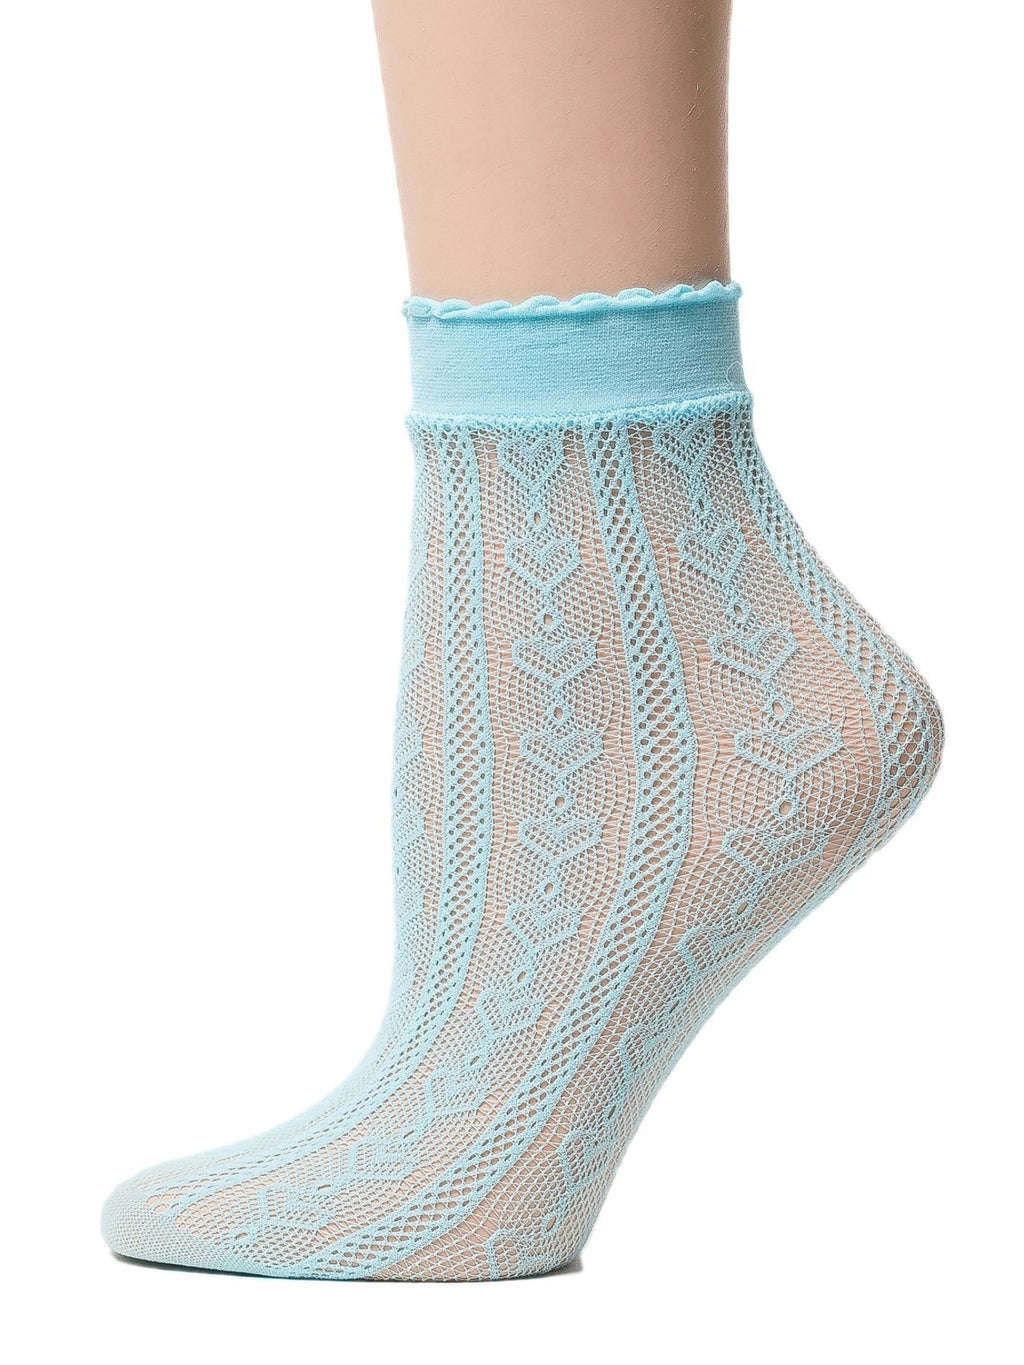 Heart Cool Blue Mesh Socks